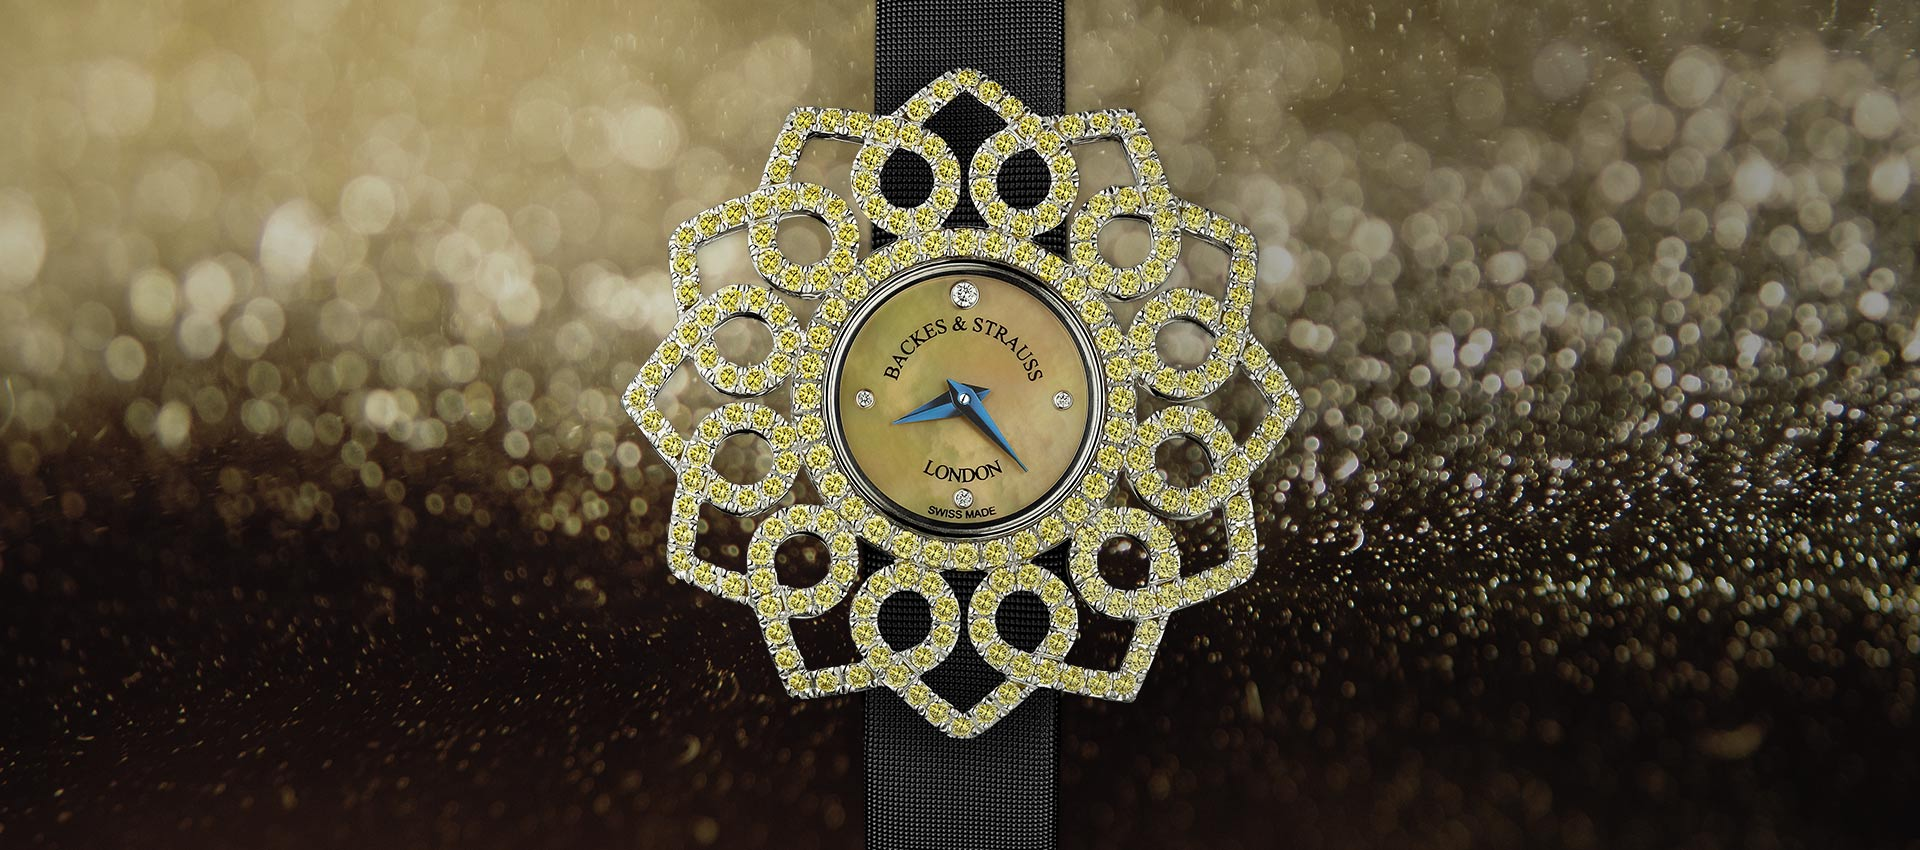 Classic Victoria collection luxury watches